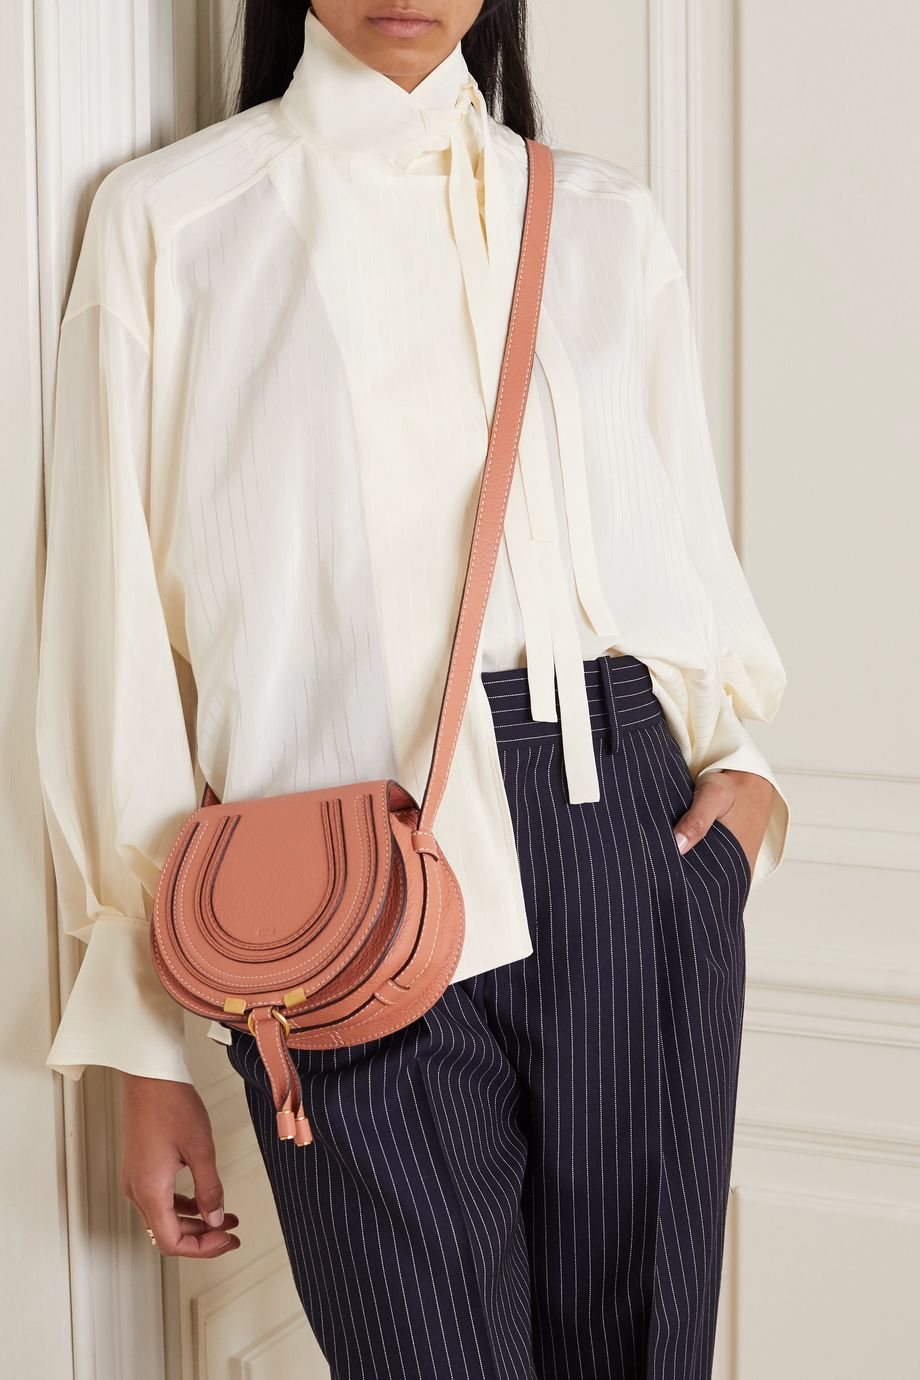 Chloé Marcie small textured-leather shoulder bag